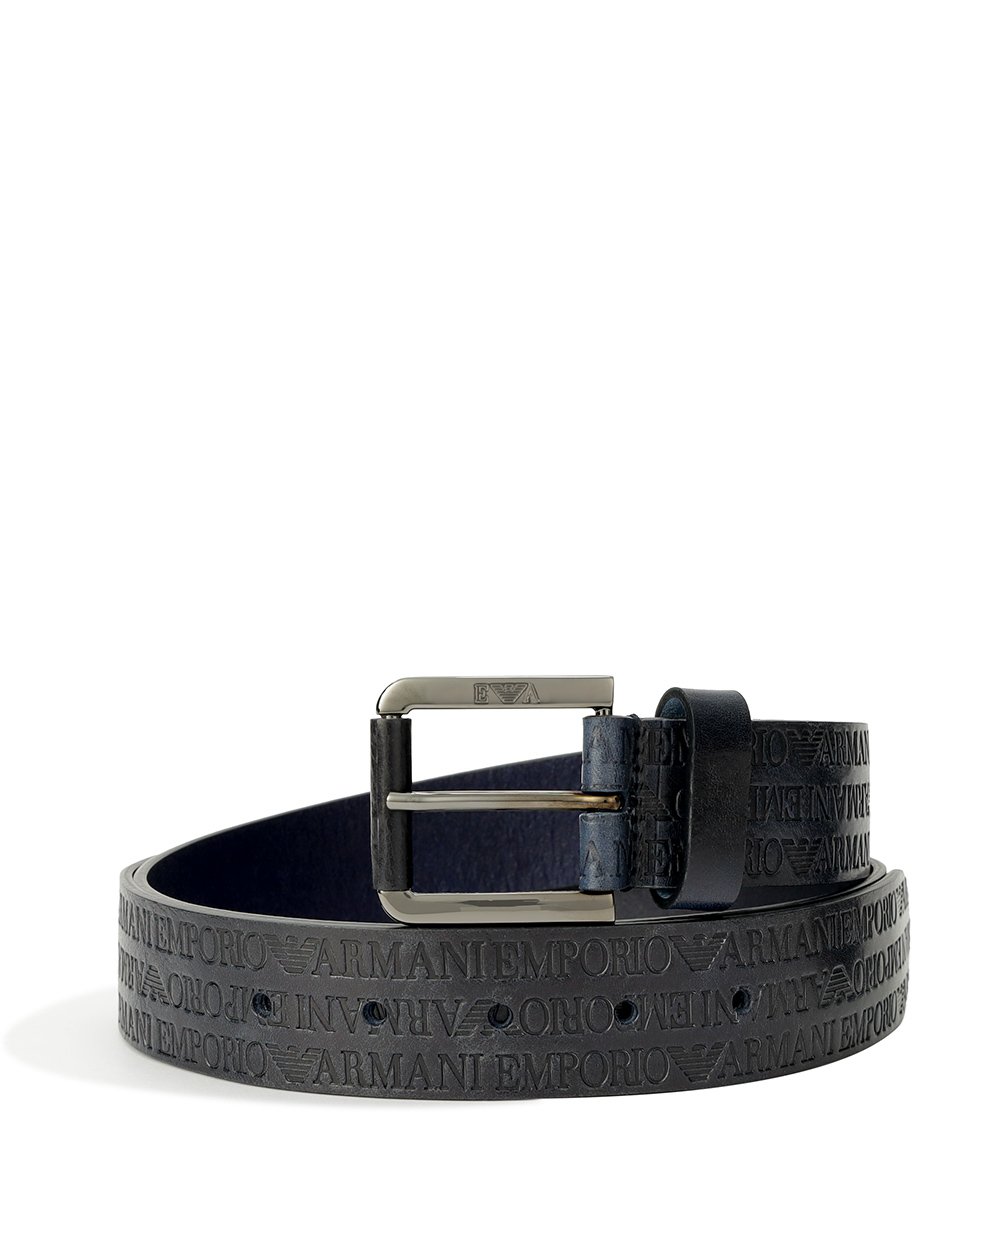 LOGO Printed Leather Pin Buckle Be